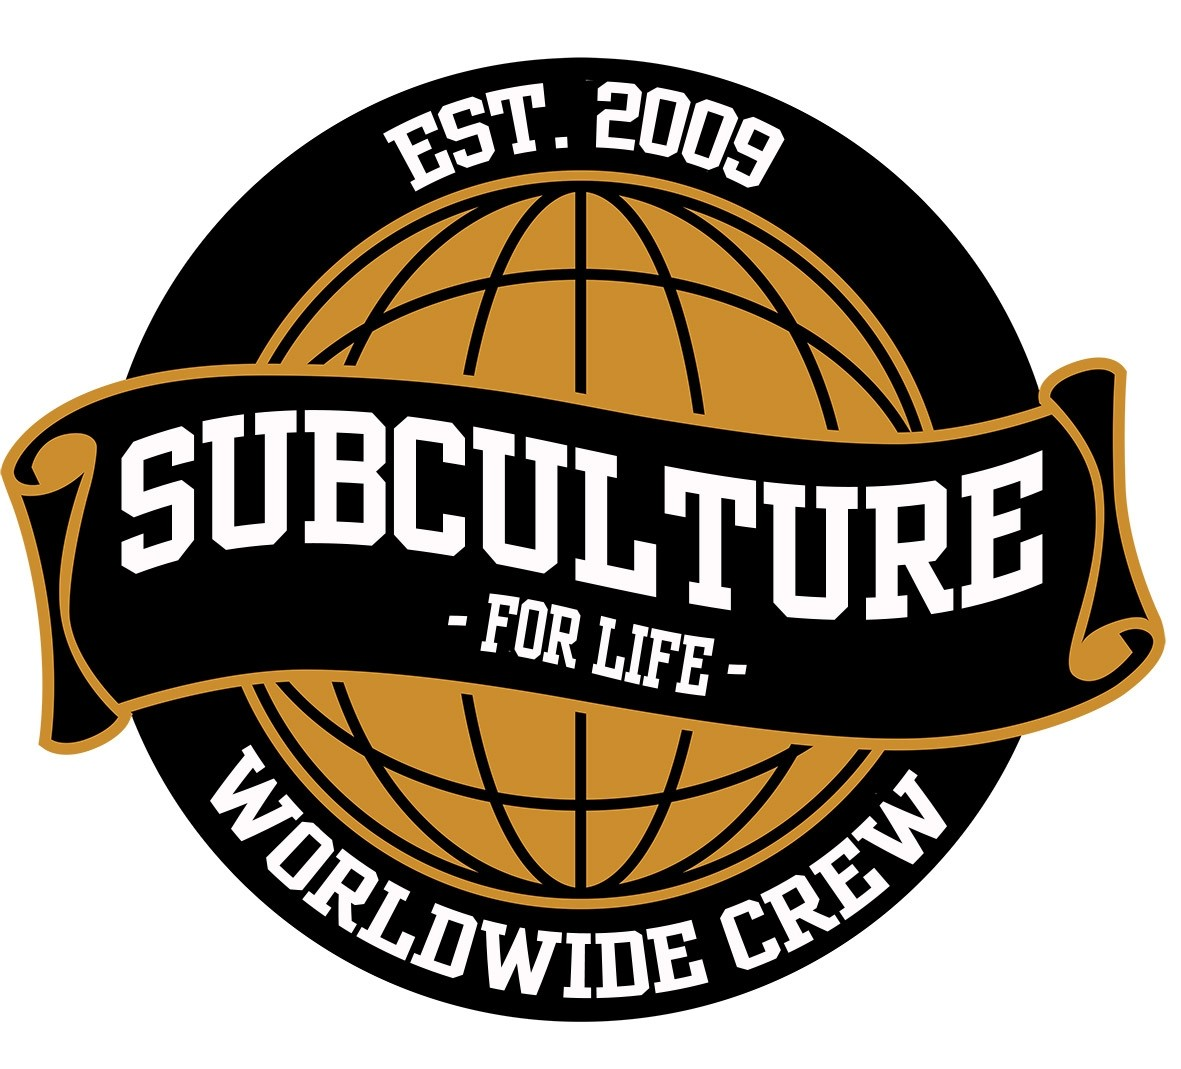 Subculture for Life - Worldwide Crew '09 - Sticker